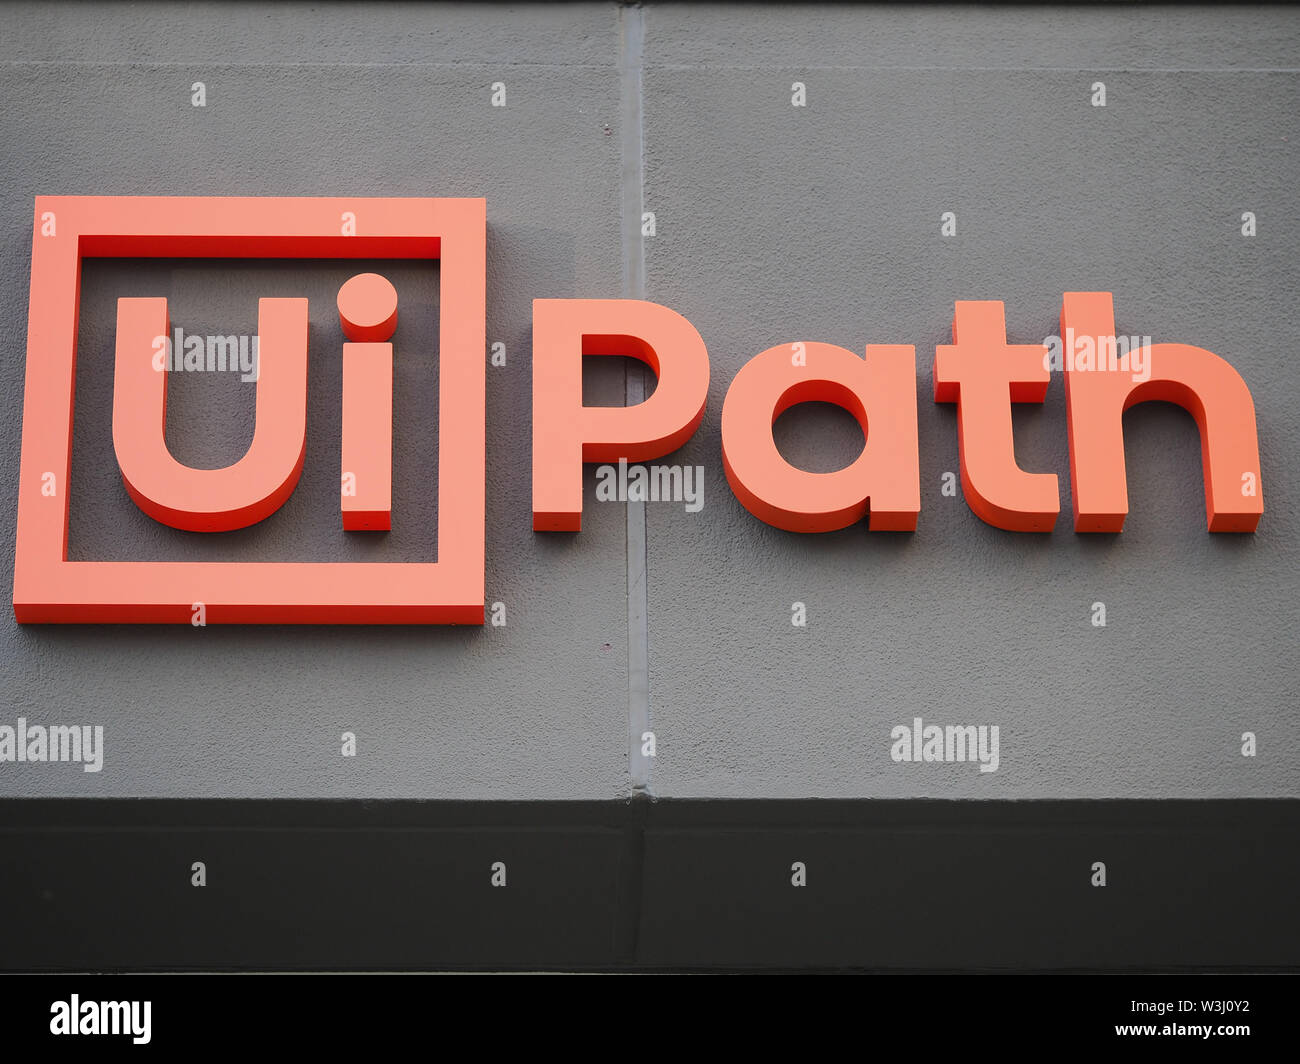 Uipath Stock Photos & Uipath Stock Images - Alamy